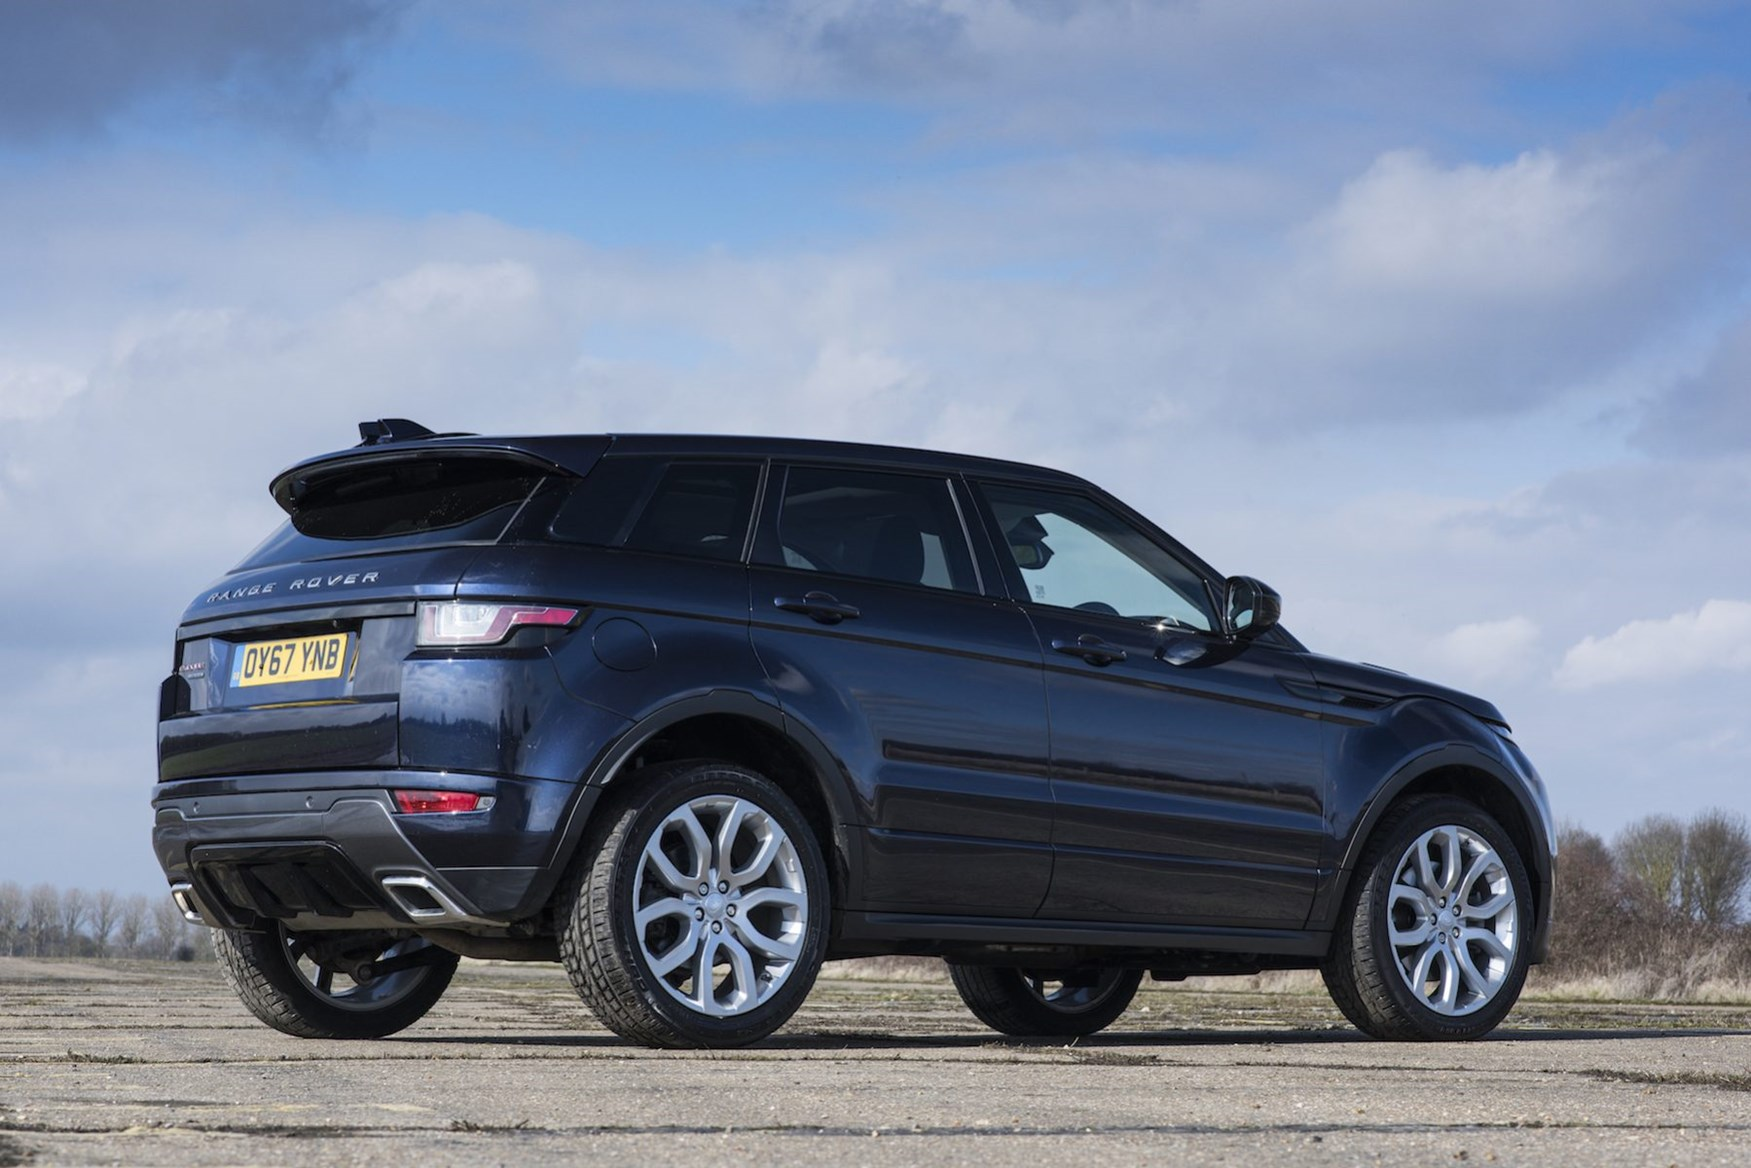 range rover evoque suv review summary parkers. Black Bedroom Furniture Sets. Home Design Ideas